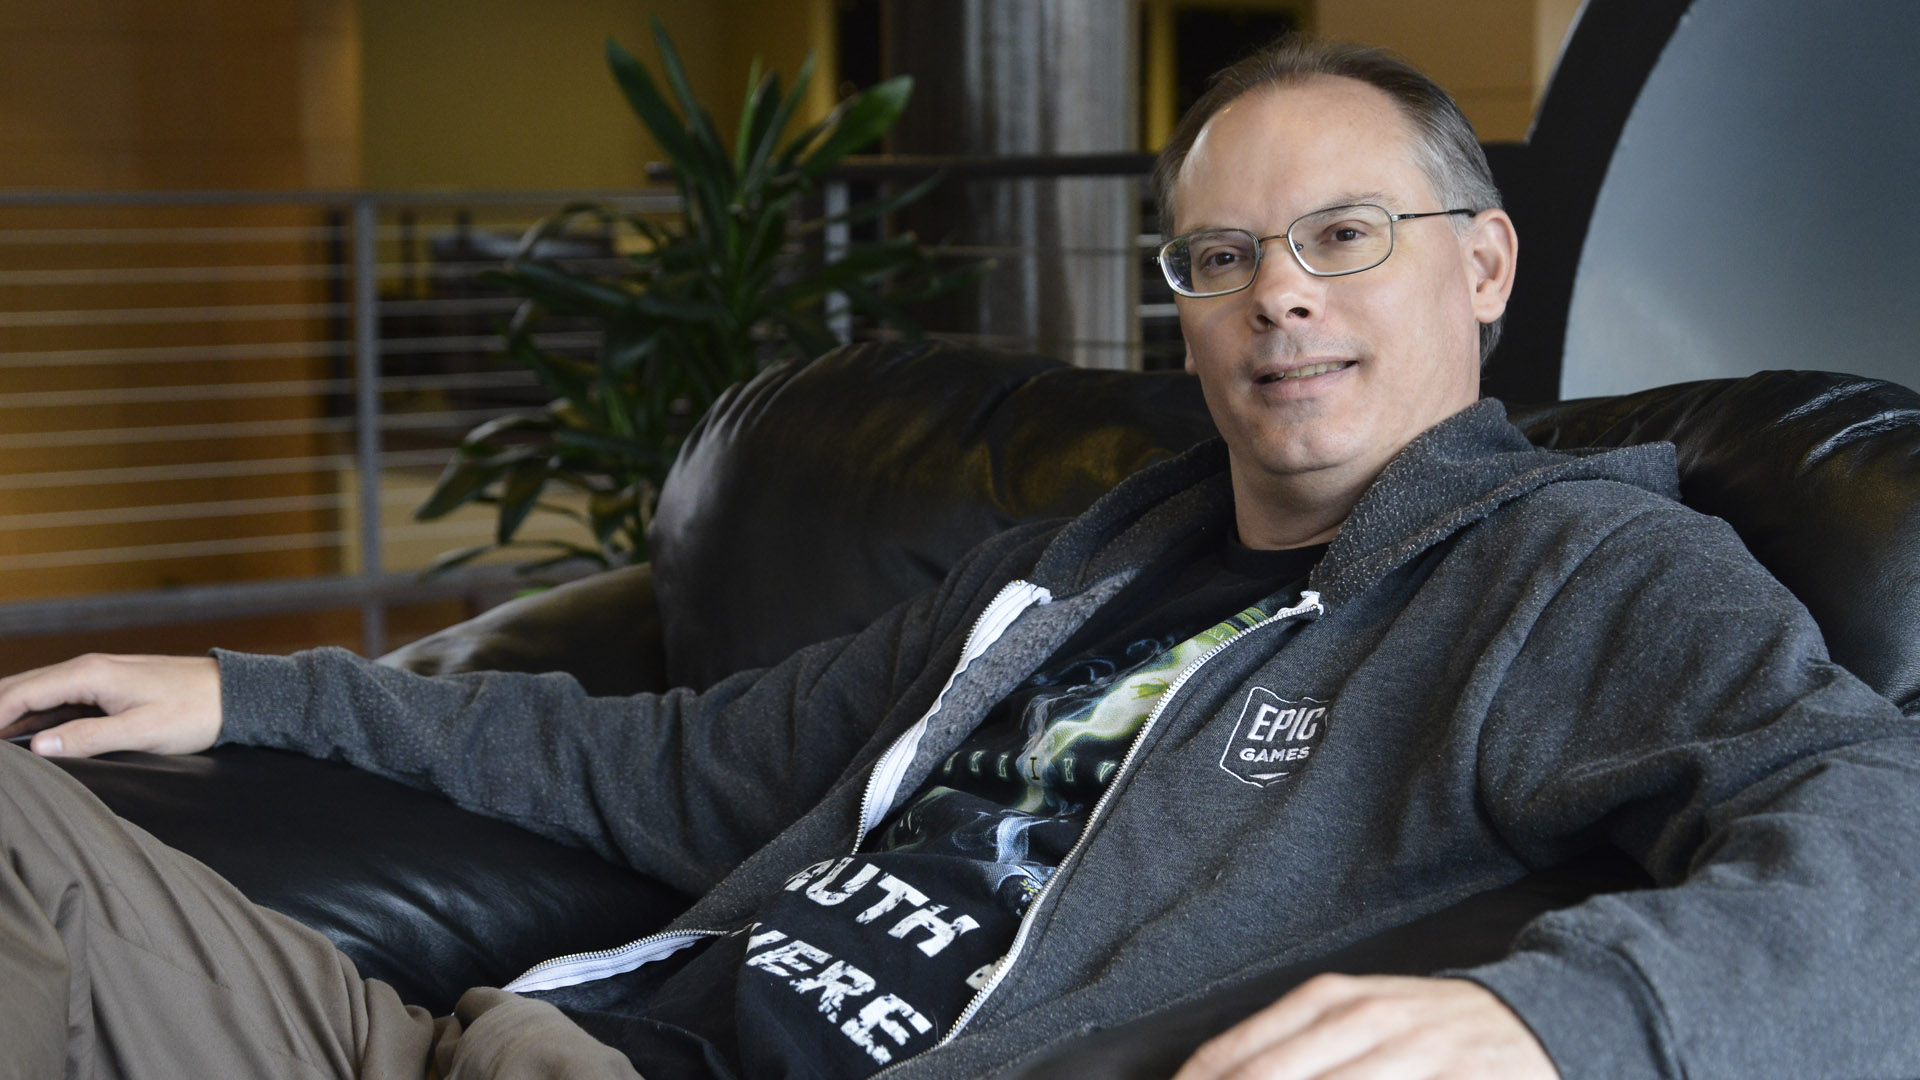 Epic Games Tim Sweeney On Fortnite The Company S Very Own Victory Royale Mcv Develop